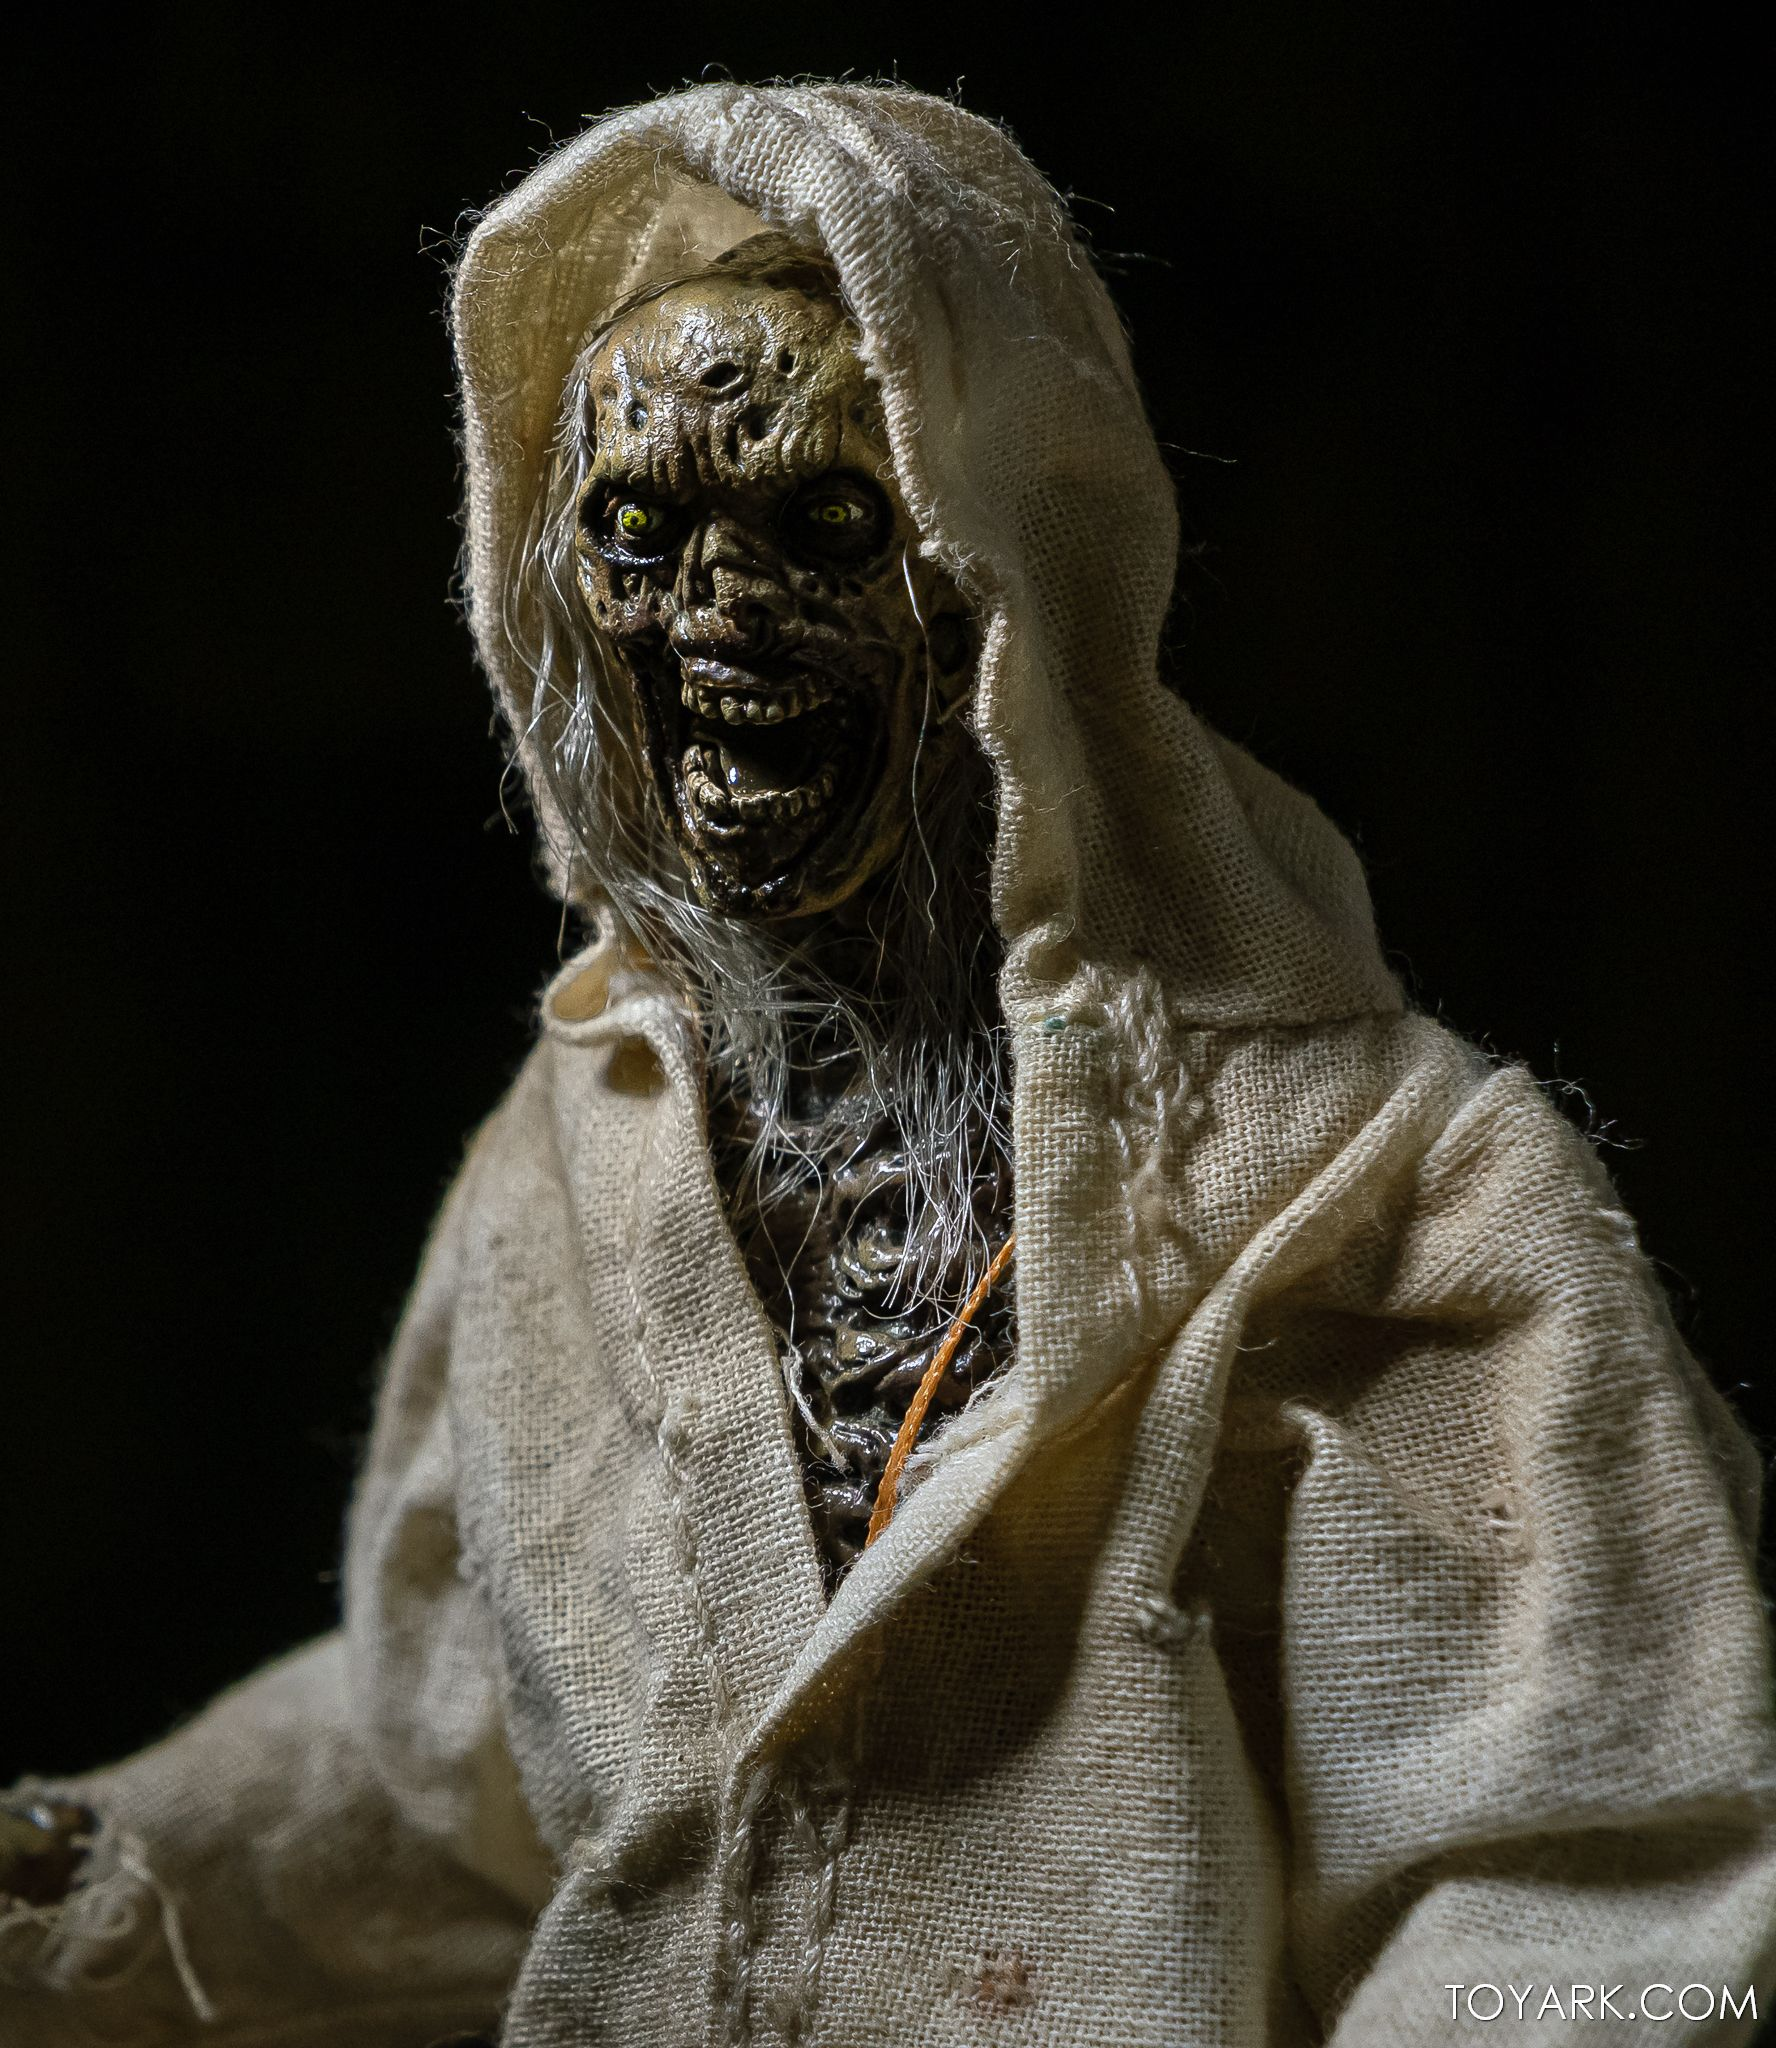 https://news.toyark.com/wp-content/uploads/sites/4/2020/09/Creepshow-The-Creep-Figure-028.jpg